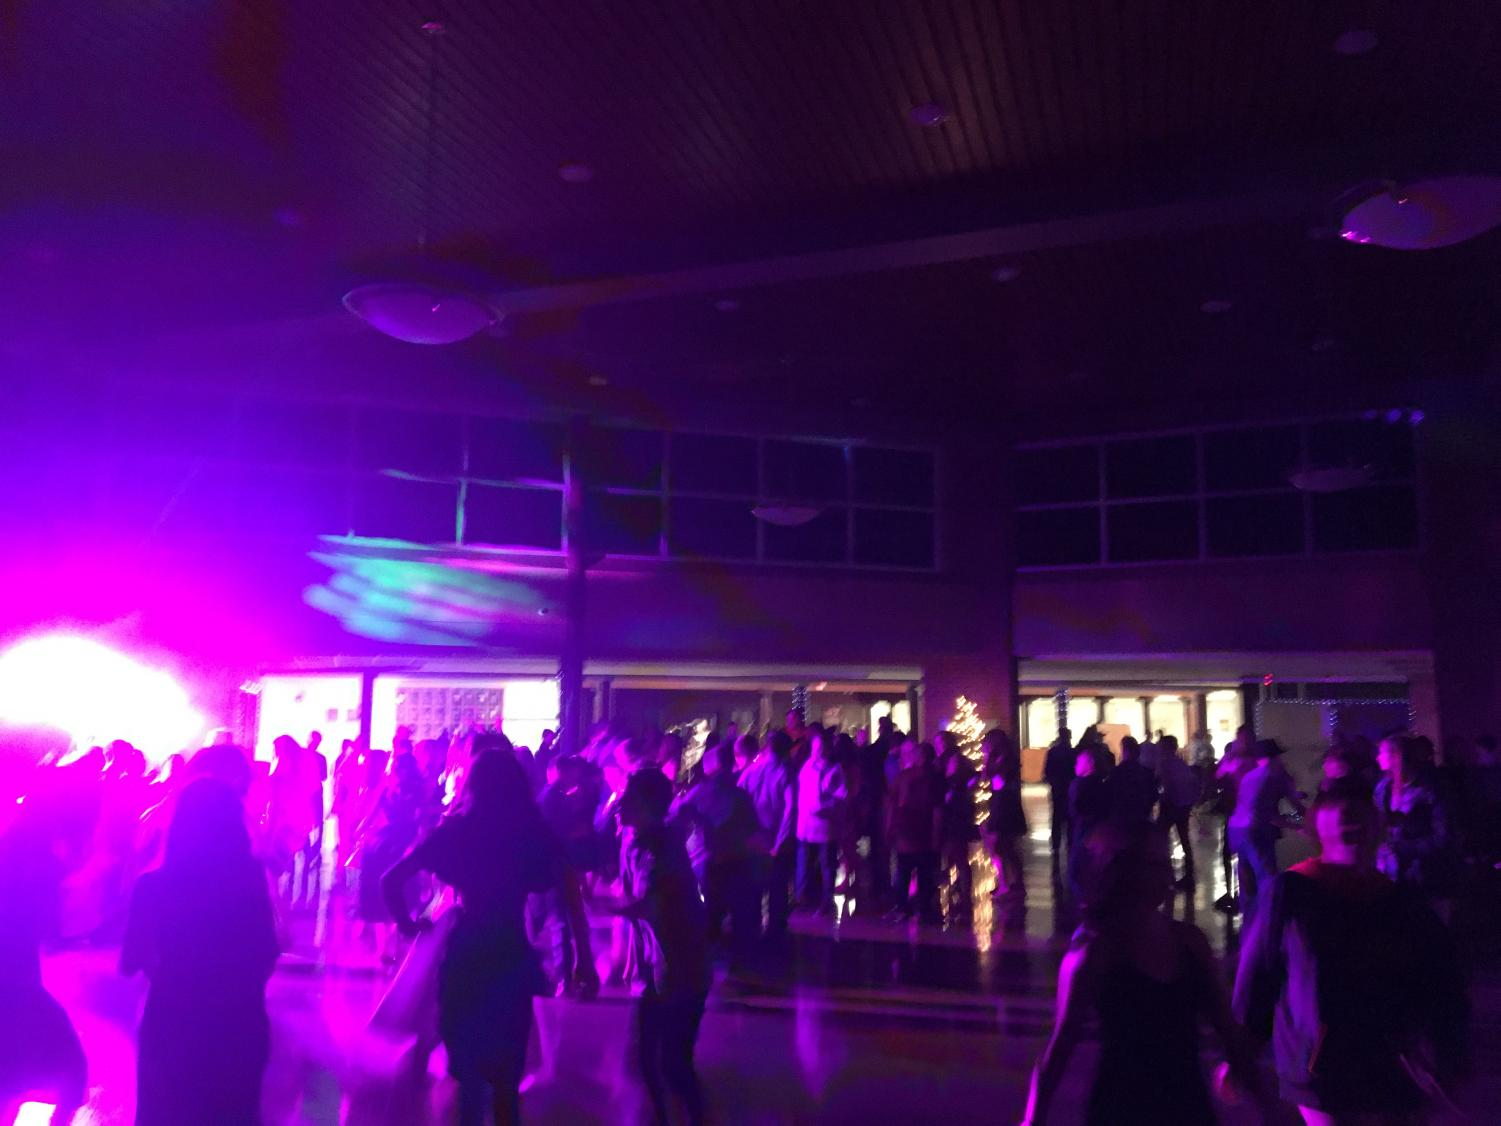 Under colorful lights, middle schoolers danced with one another.